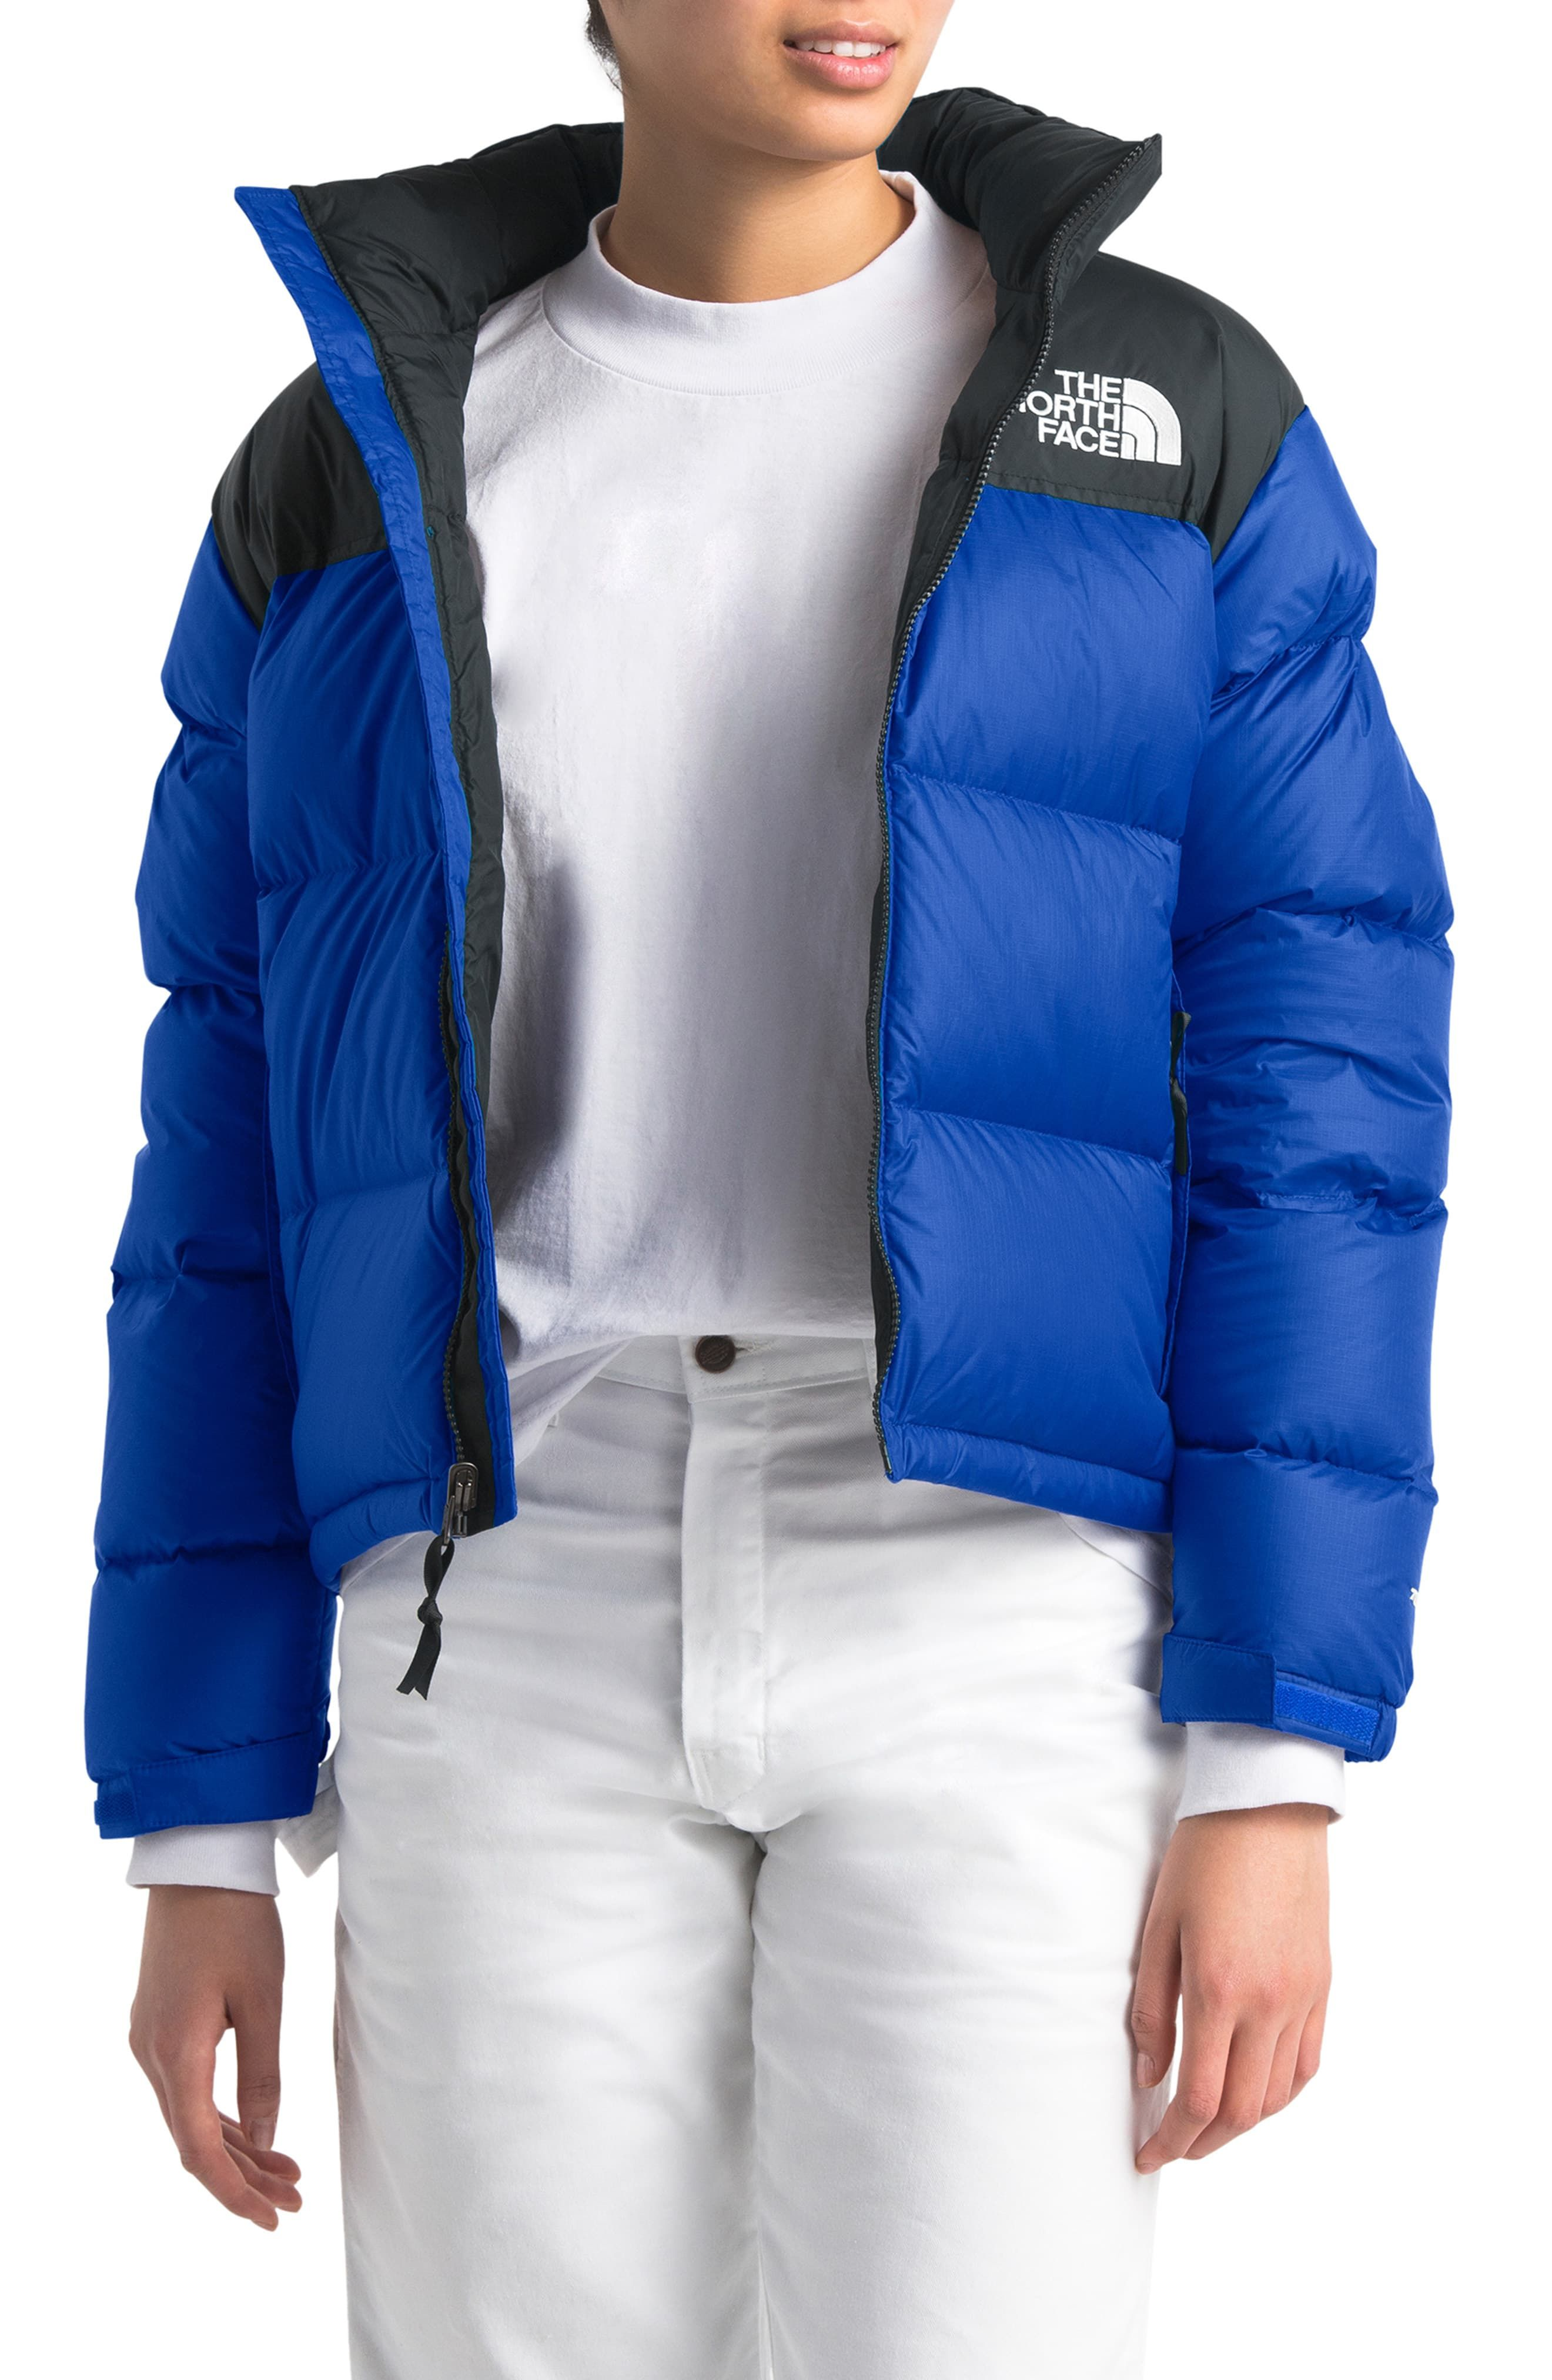 The North Face Nuptse 1996 Packable Quilted Down Jacket Nordstrom North Face Jacket Blue North Face Jacket North Face Jacket Outfit [ 4048 x 2640 Pixel ]